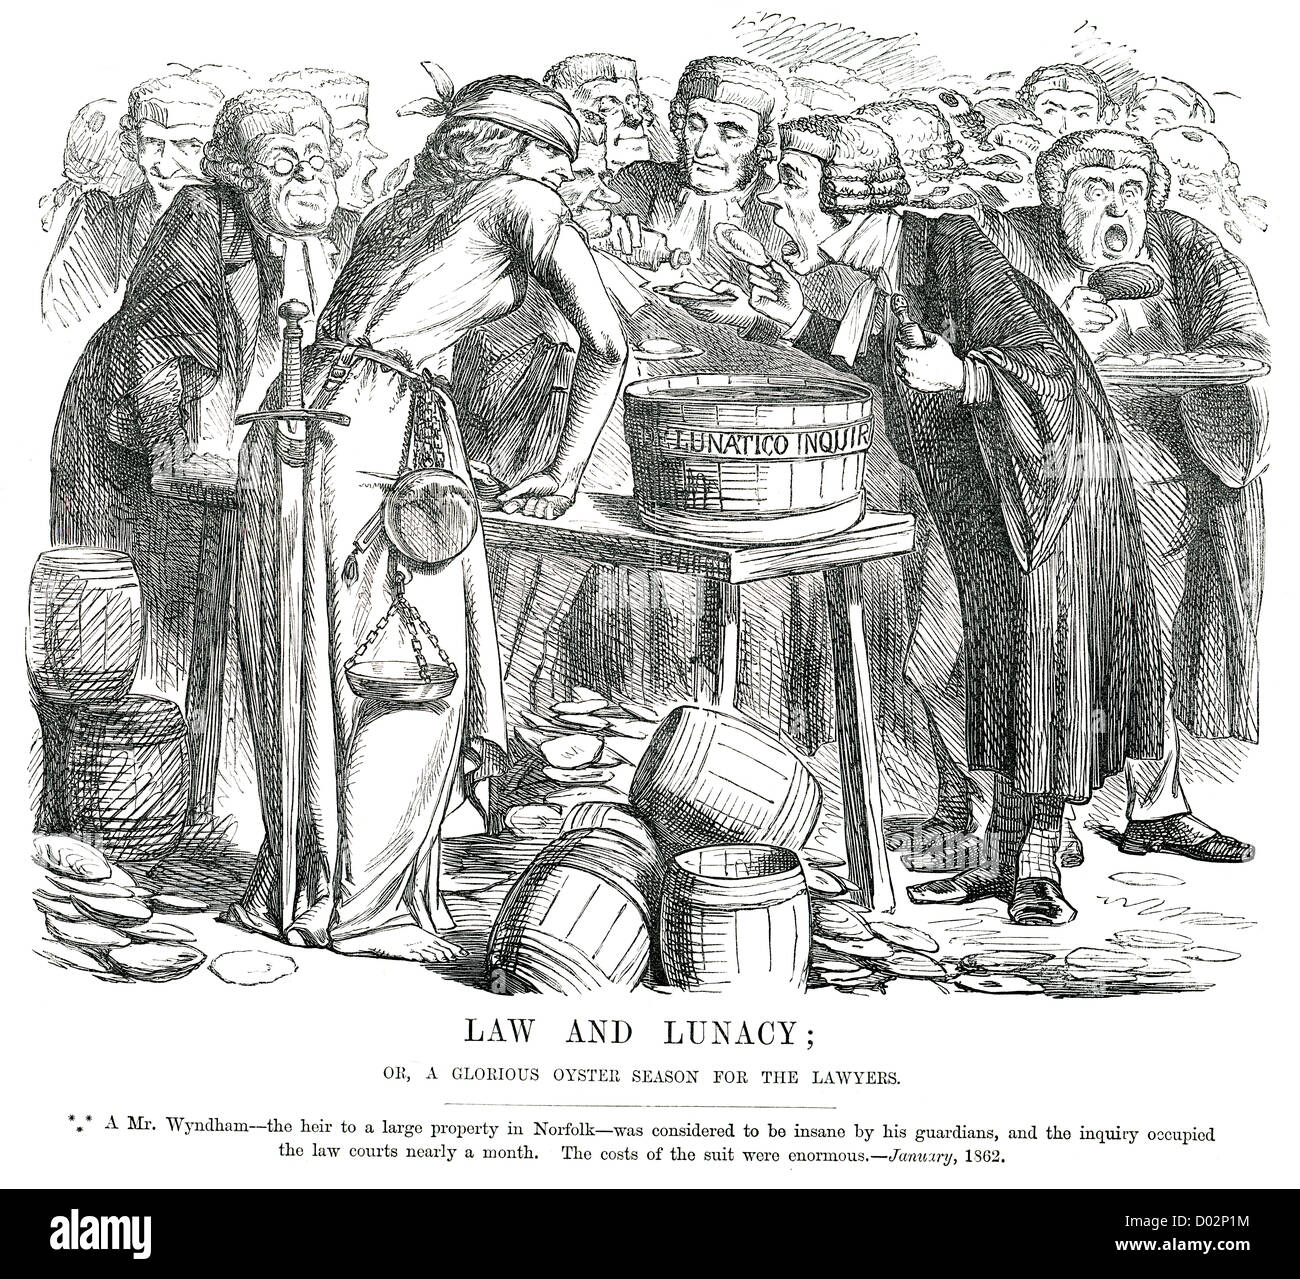 Law and Lunacy. Political cartoon about Wyndham Legal Case, January 1862 - Stock Image